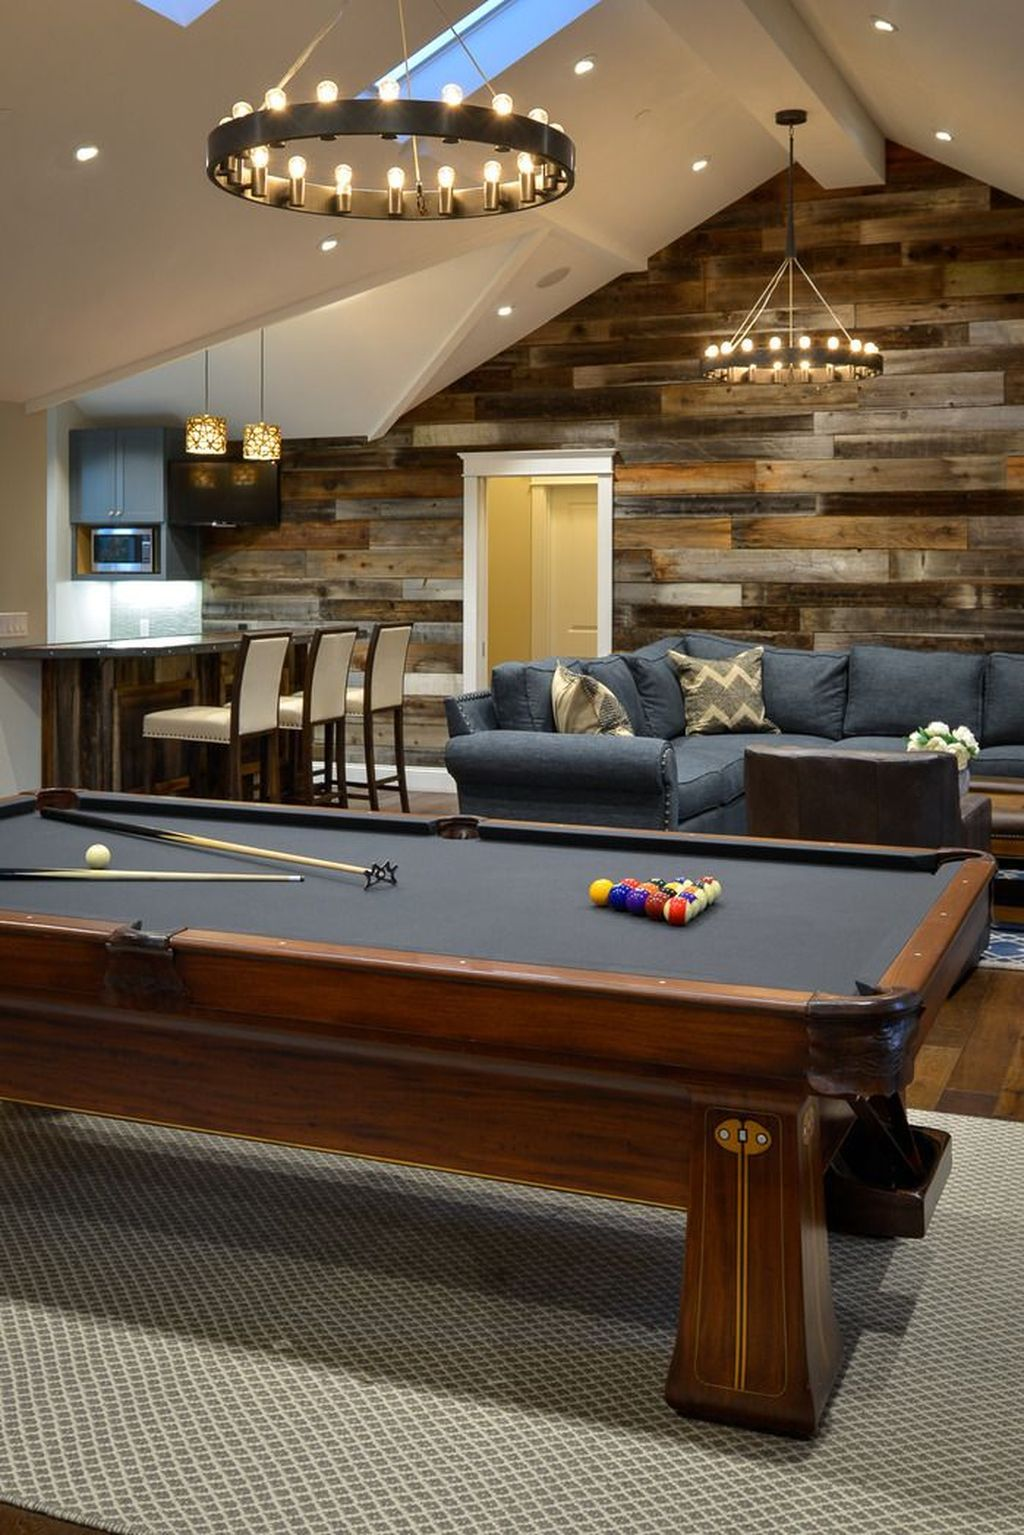 If you have a game room or recreation area in your home, it's important to have good lighting. 30 Cozy Game Room Ideas For Your Home - HOUSEDCR | Pool ...